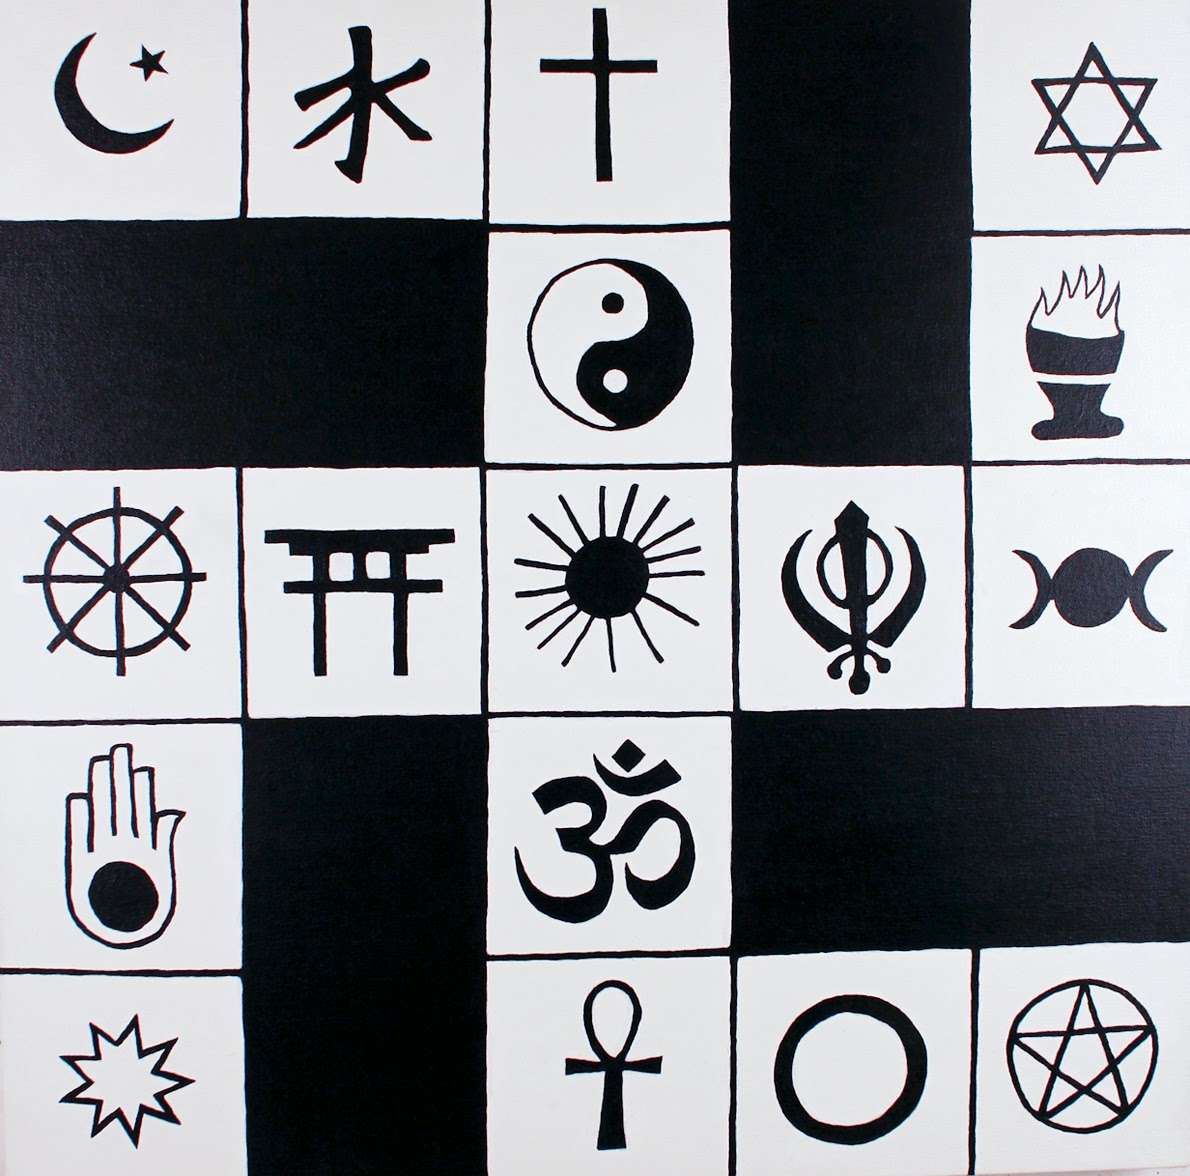 Peter reynosa it is a swastika with religious symbols in it it was created to remind people how the swastika is found in many religions and that it is a good symbol biocorpaavc